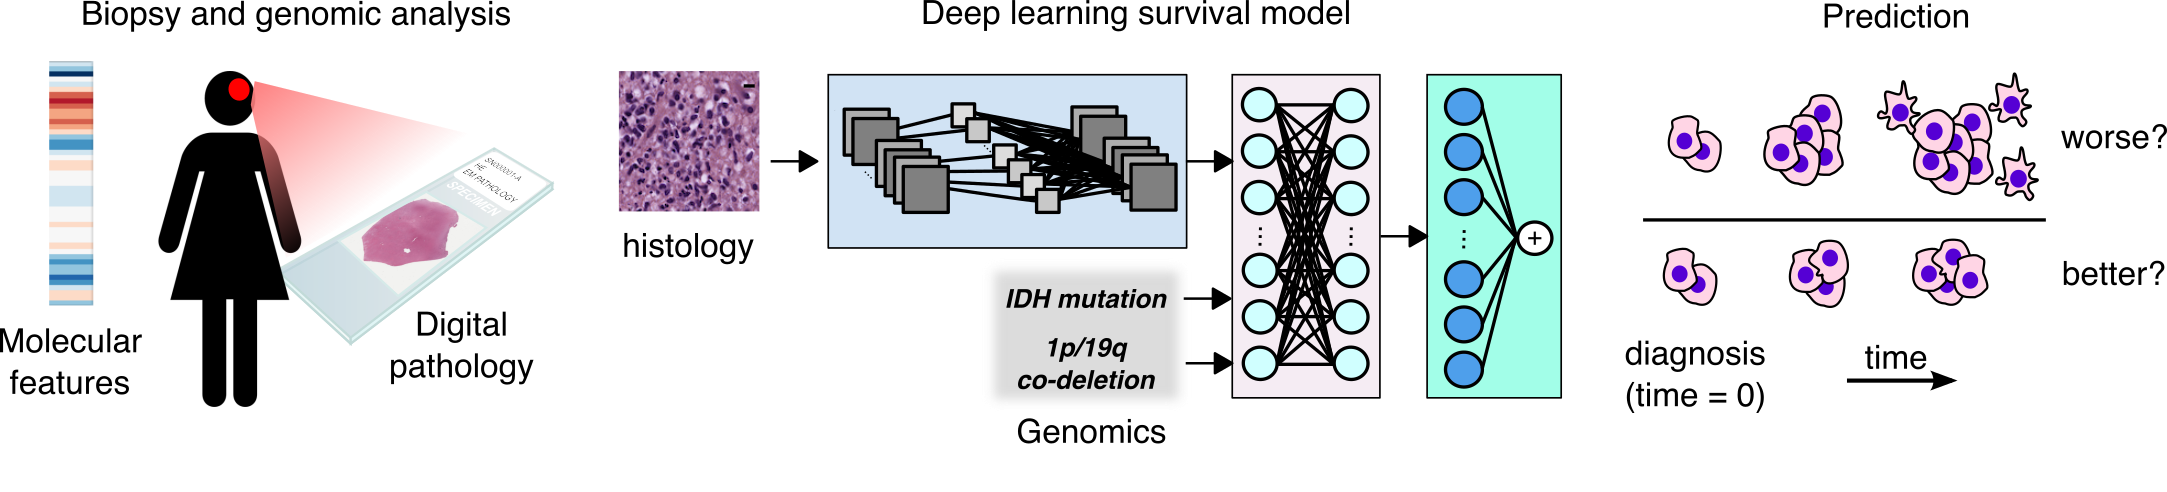 From left to right: The Biopsy and genomic analysis: shades of blue, red, and white creating molecular features, a woman icon with a slide representing digital pathology. Deep learning survival model: a slide representing histology with boxes connected by multiple lines crossing over each other leading to a box with circles that are connected by multiple lines crossing over each other leading to the last box with cirlces that are connecting to one circle by lines. Prediction: cells over and under a line